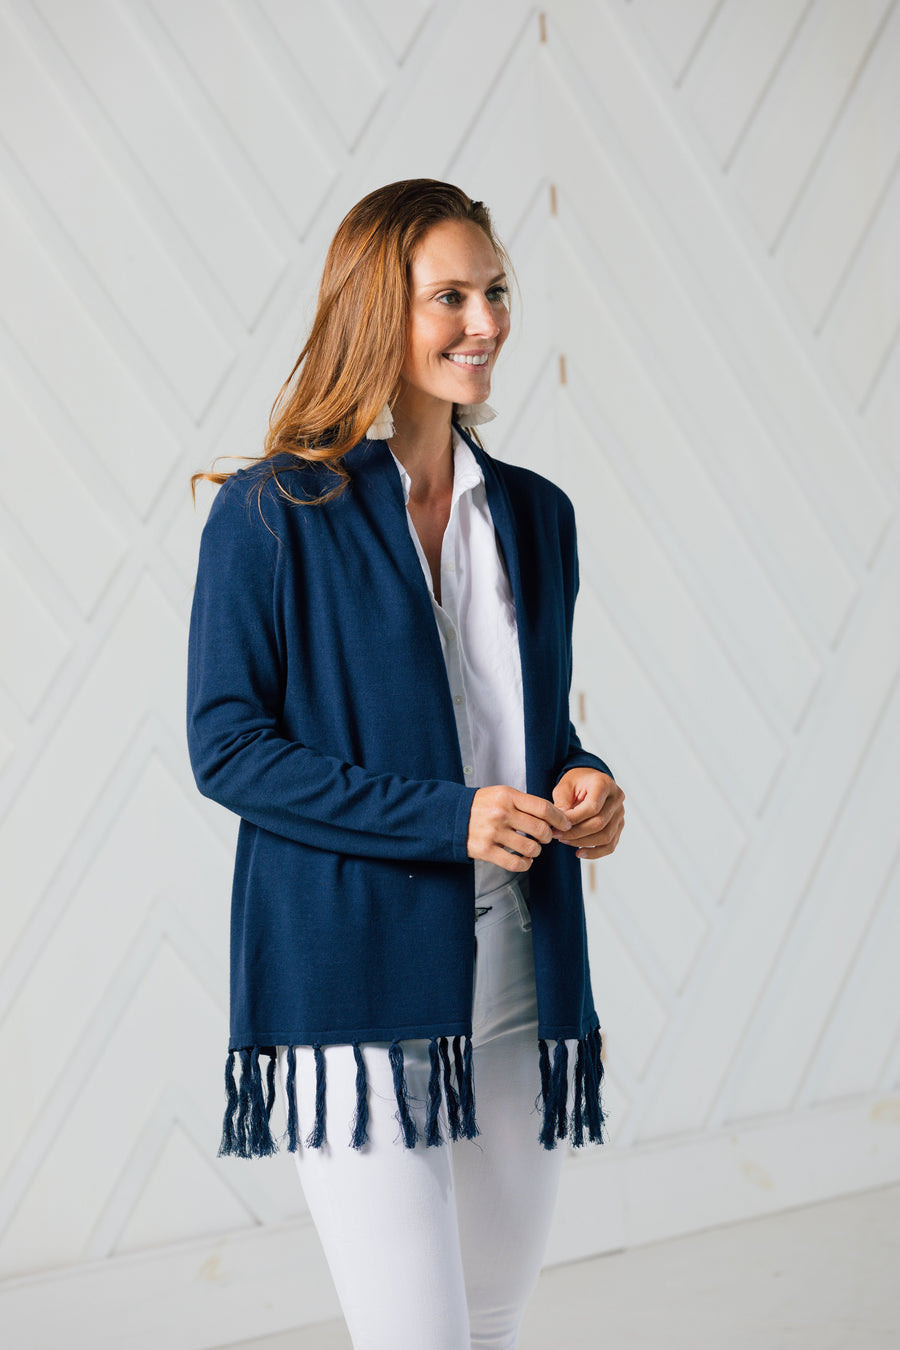 Tassel Drape Front Cardigan (two colors)